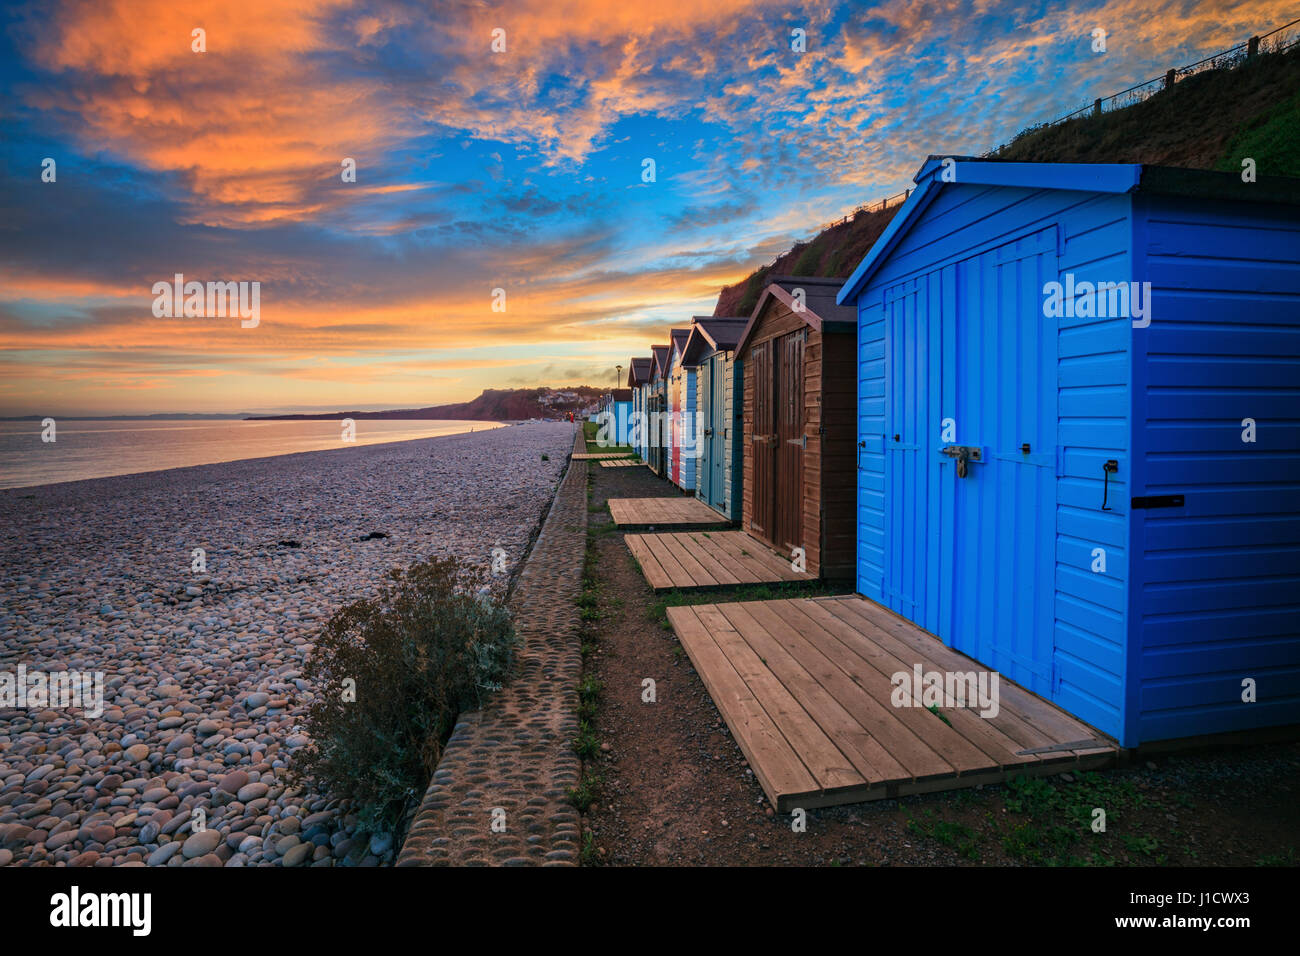 Beach Huts at Budleigh Salterton in South East Devon - Stock Image